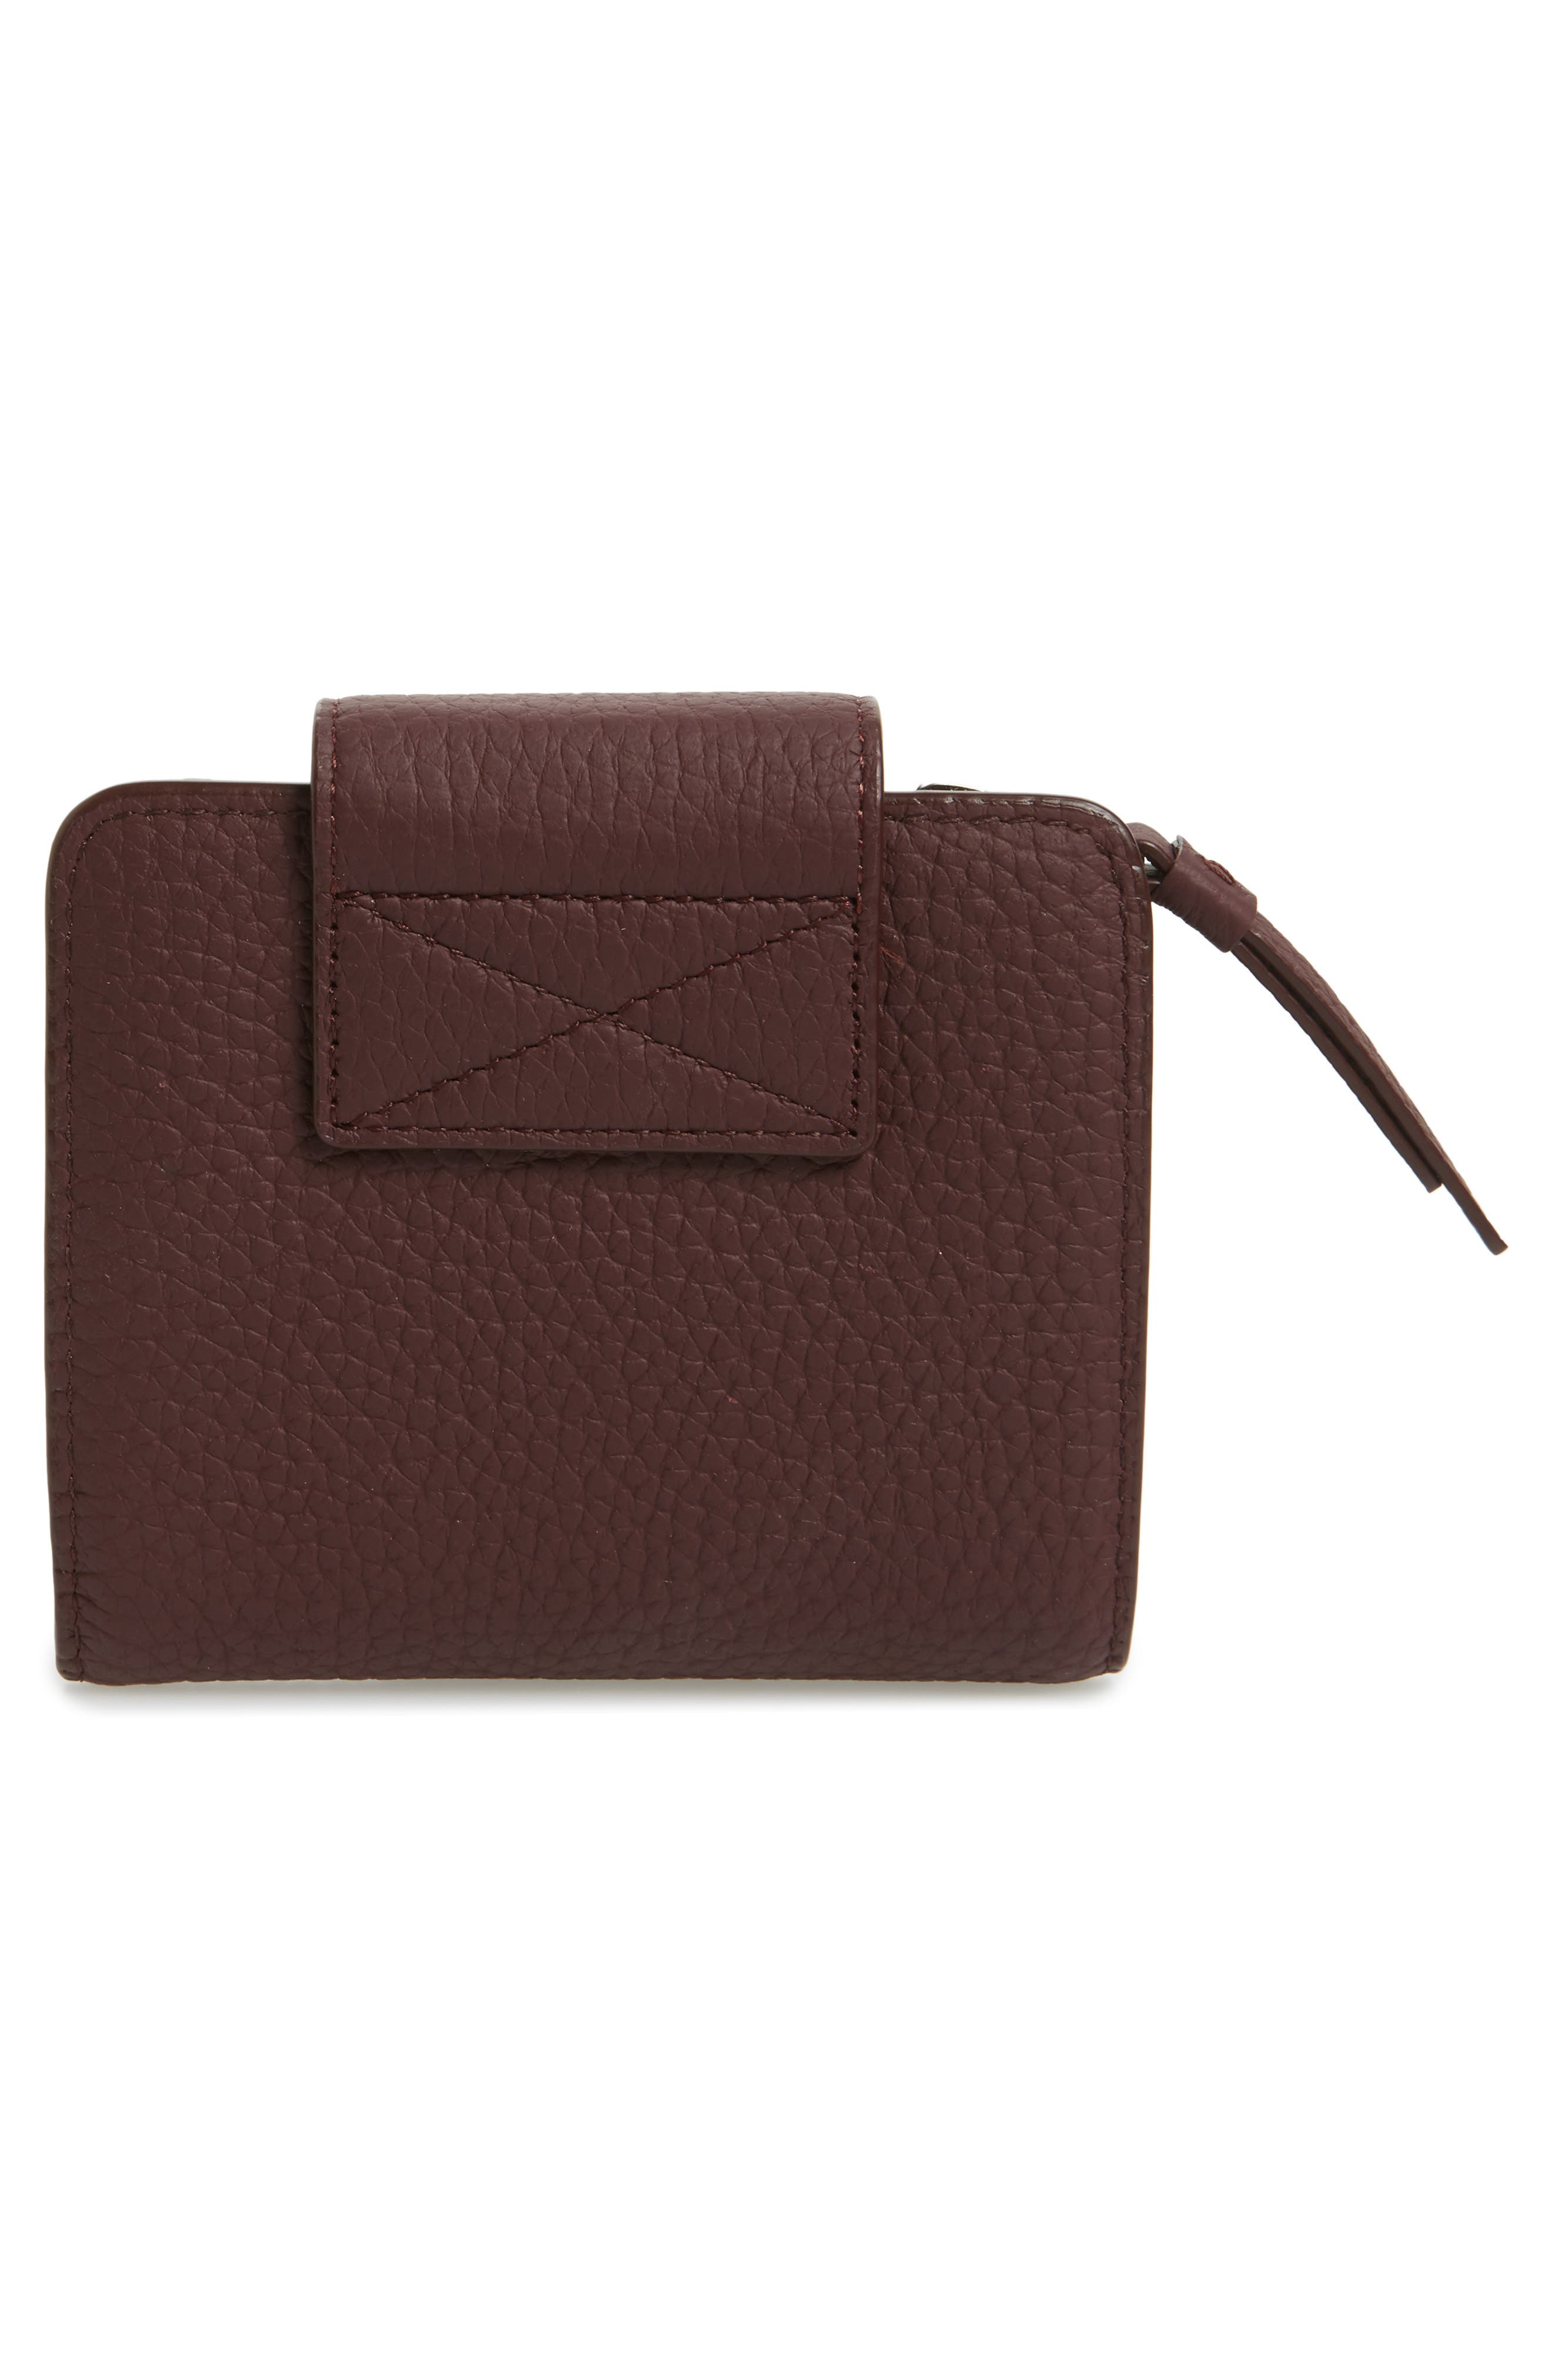 Small Ray Leather Wallet,                             Alternate thumbnail 15, color,